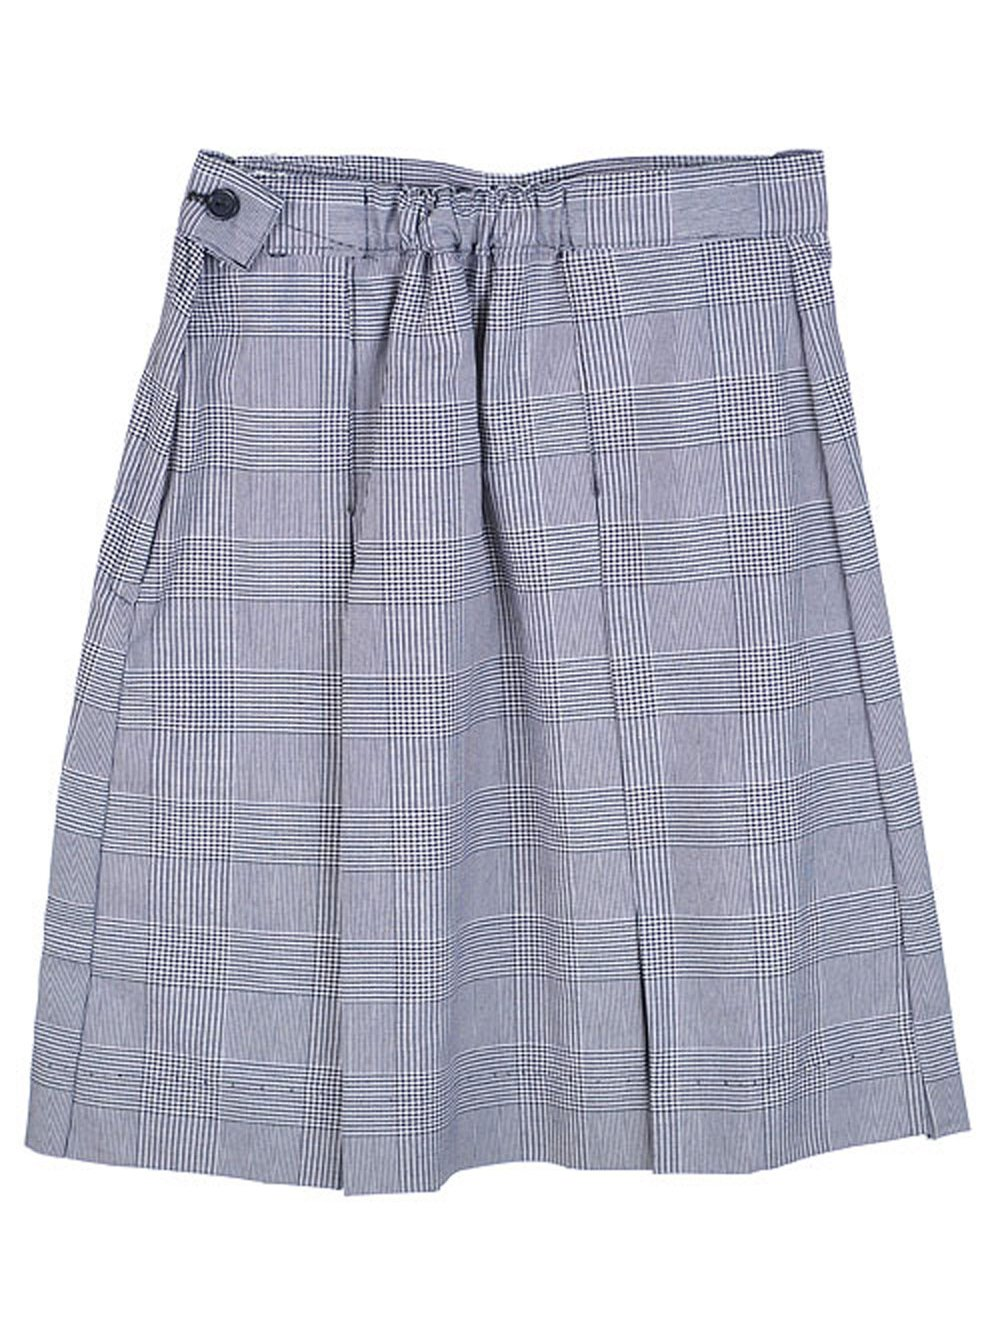 Cookie's Brand Big Girls' Box Pleat Skirt - white/navyplaid #38, 14